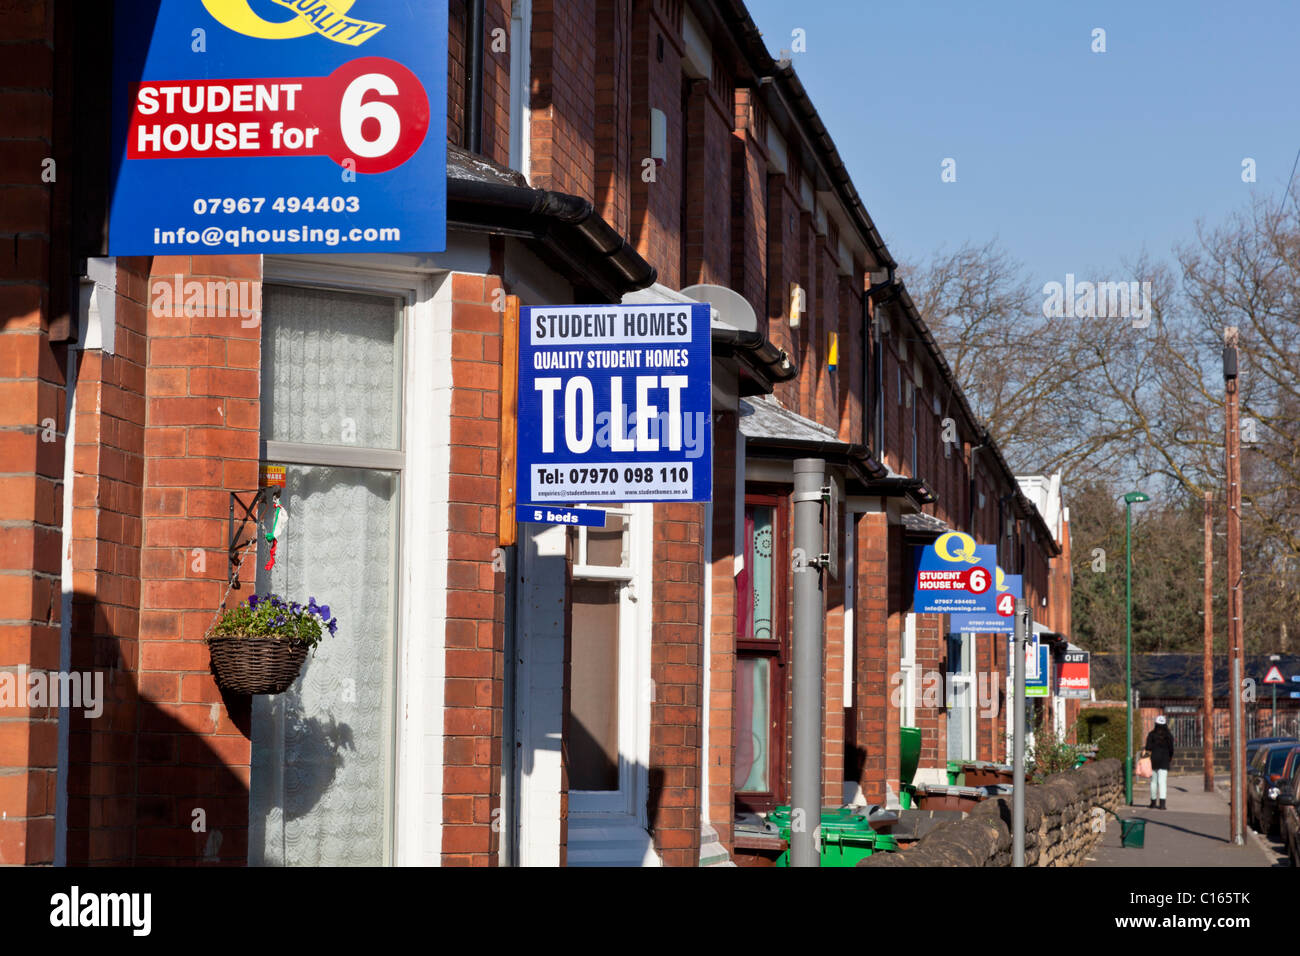 To let signs in a residential area - Stock Image